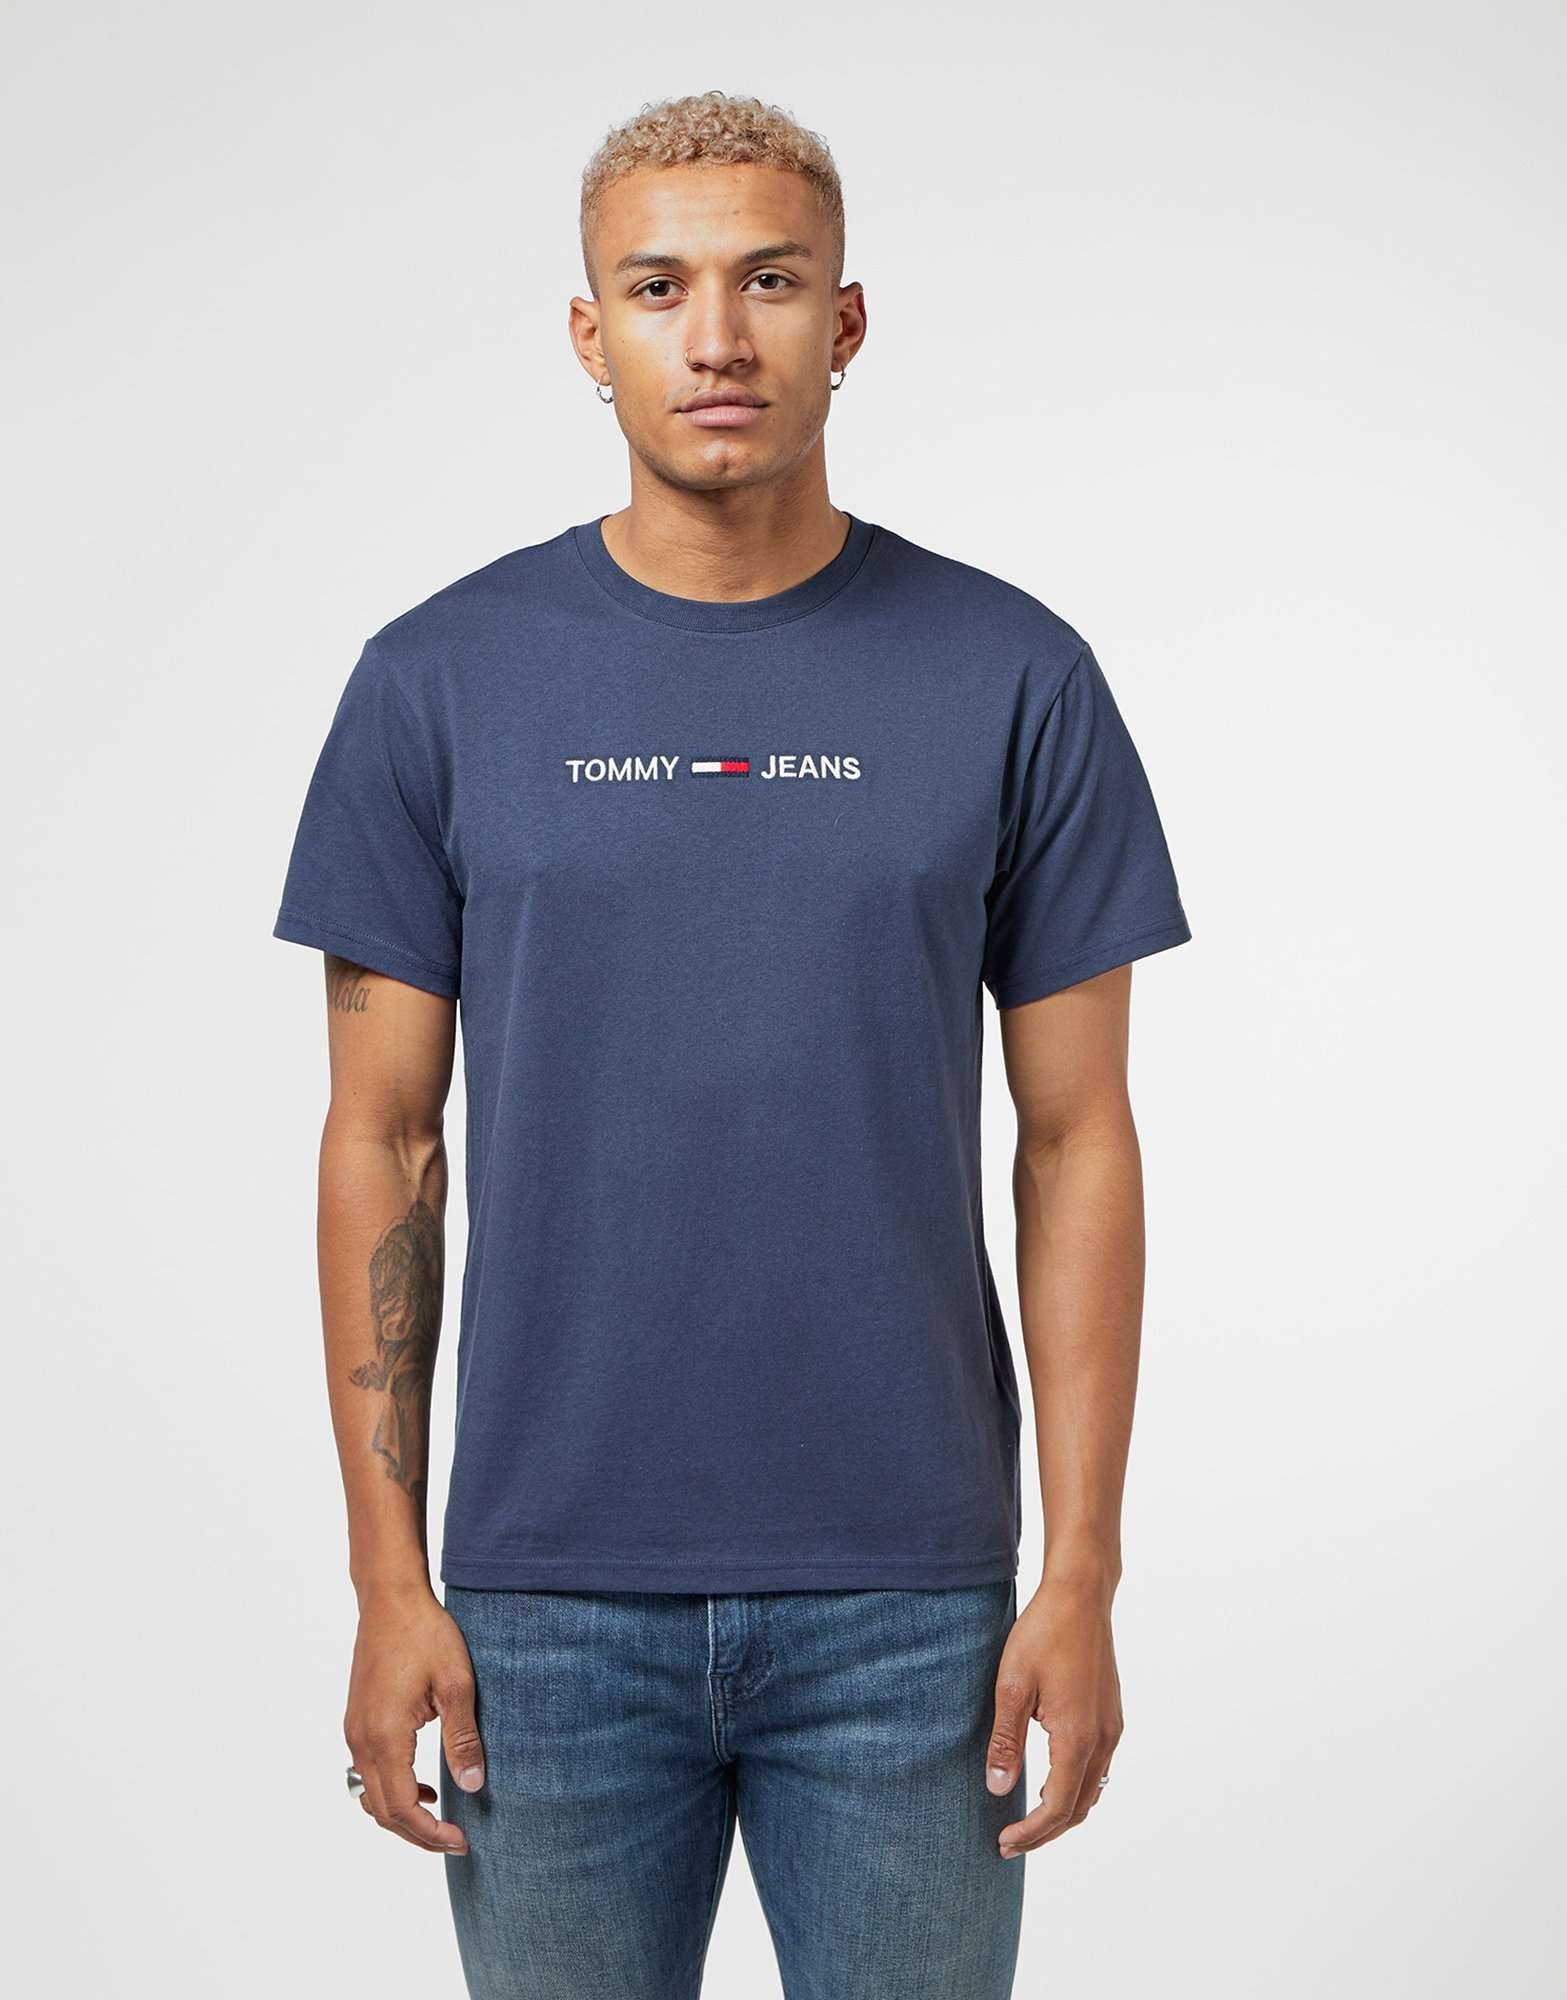 Tommy Jeans Embroidered Logo Short Sleeve T-Shirt